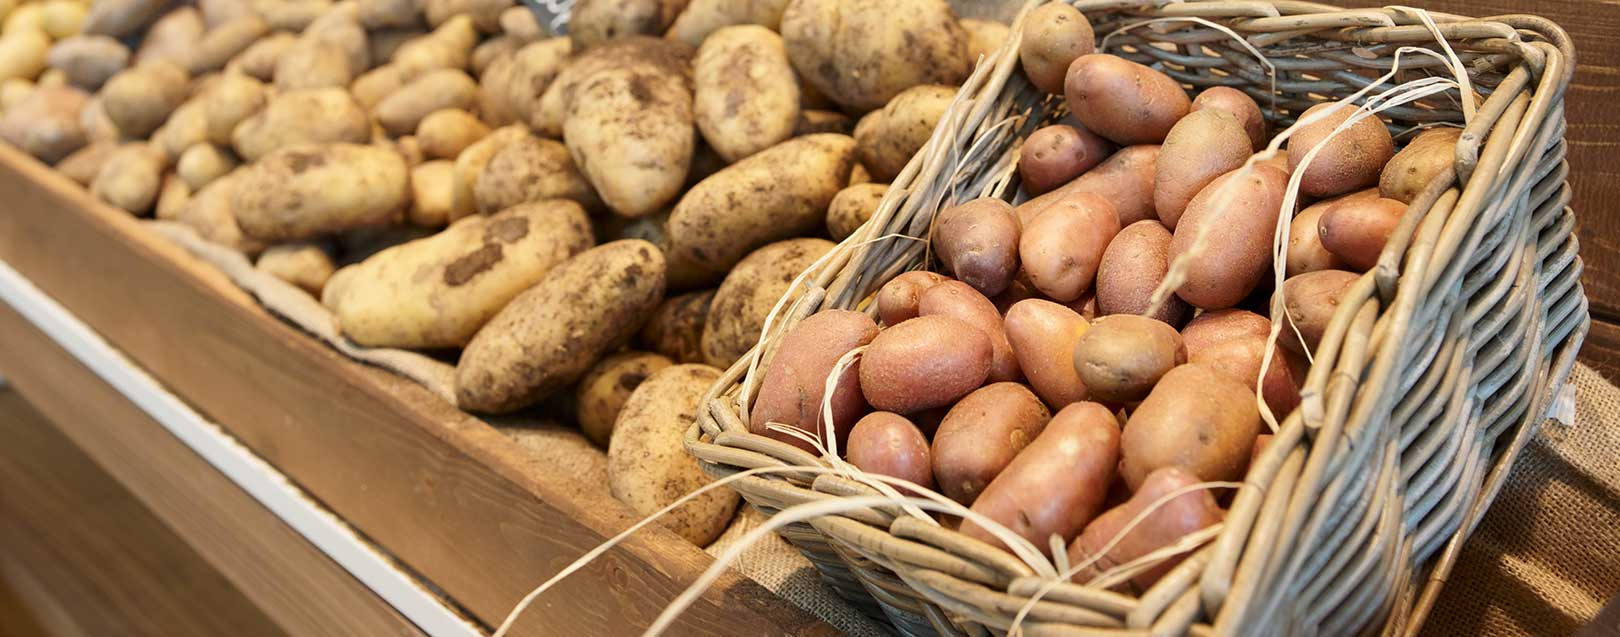 UP govt to buy one lakh metric tonne of potatoes at Rs 487 per quintal